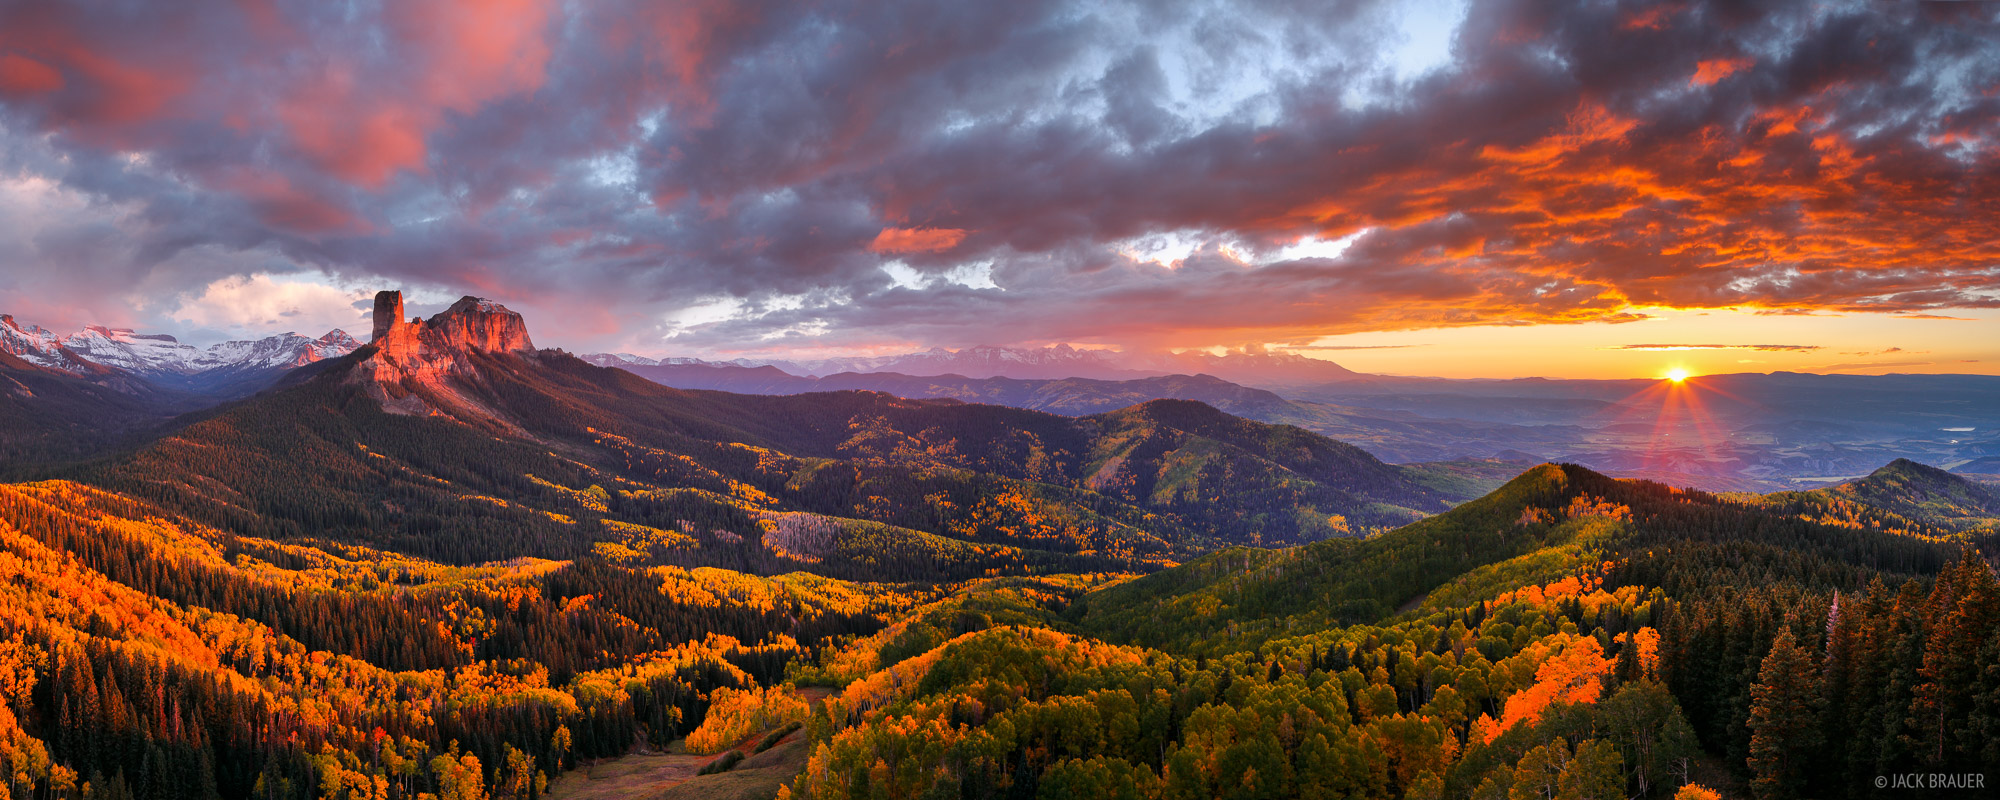 Cimarrons, Ridgway, Pleasant Valley, Sneffels Range, Chimney Rock, Courthouse Mountain, San Juan Mountains, Colorado, sunset, panorama, photo